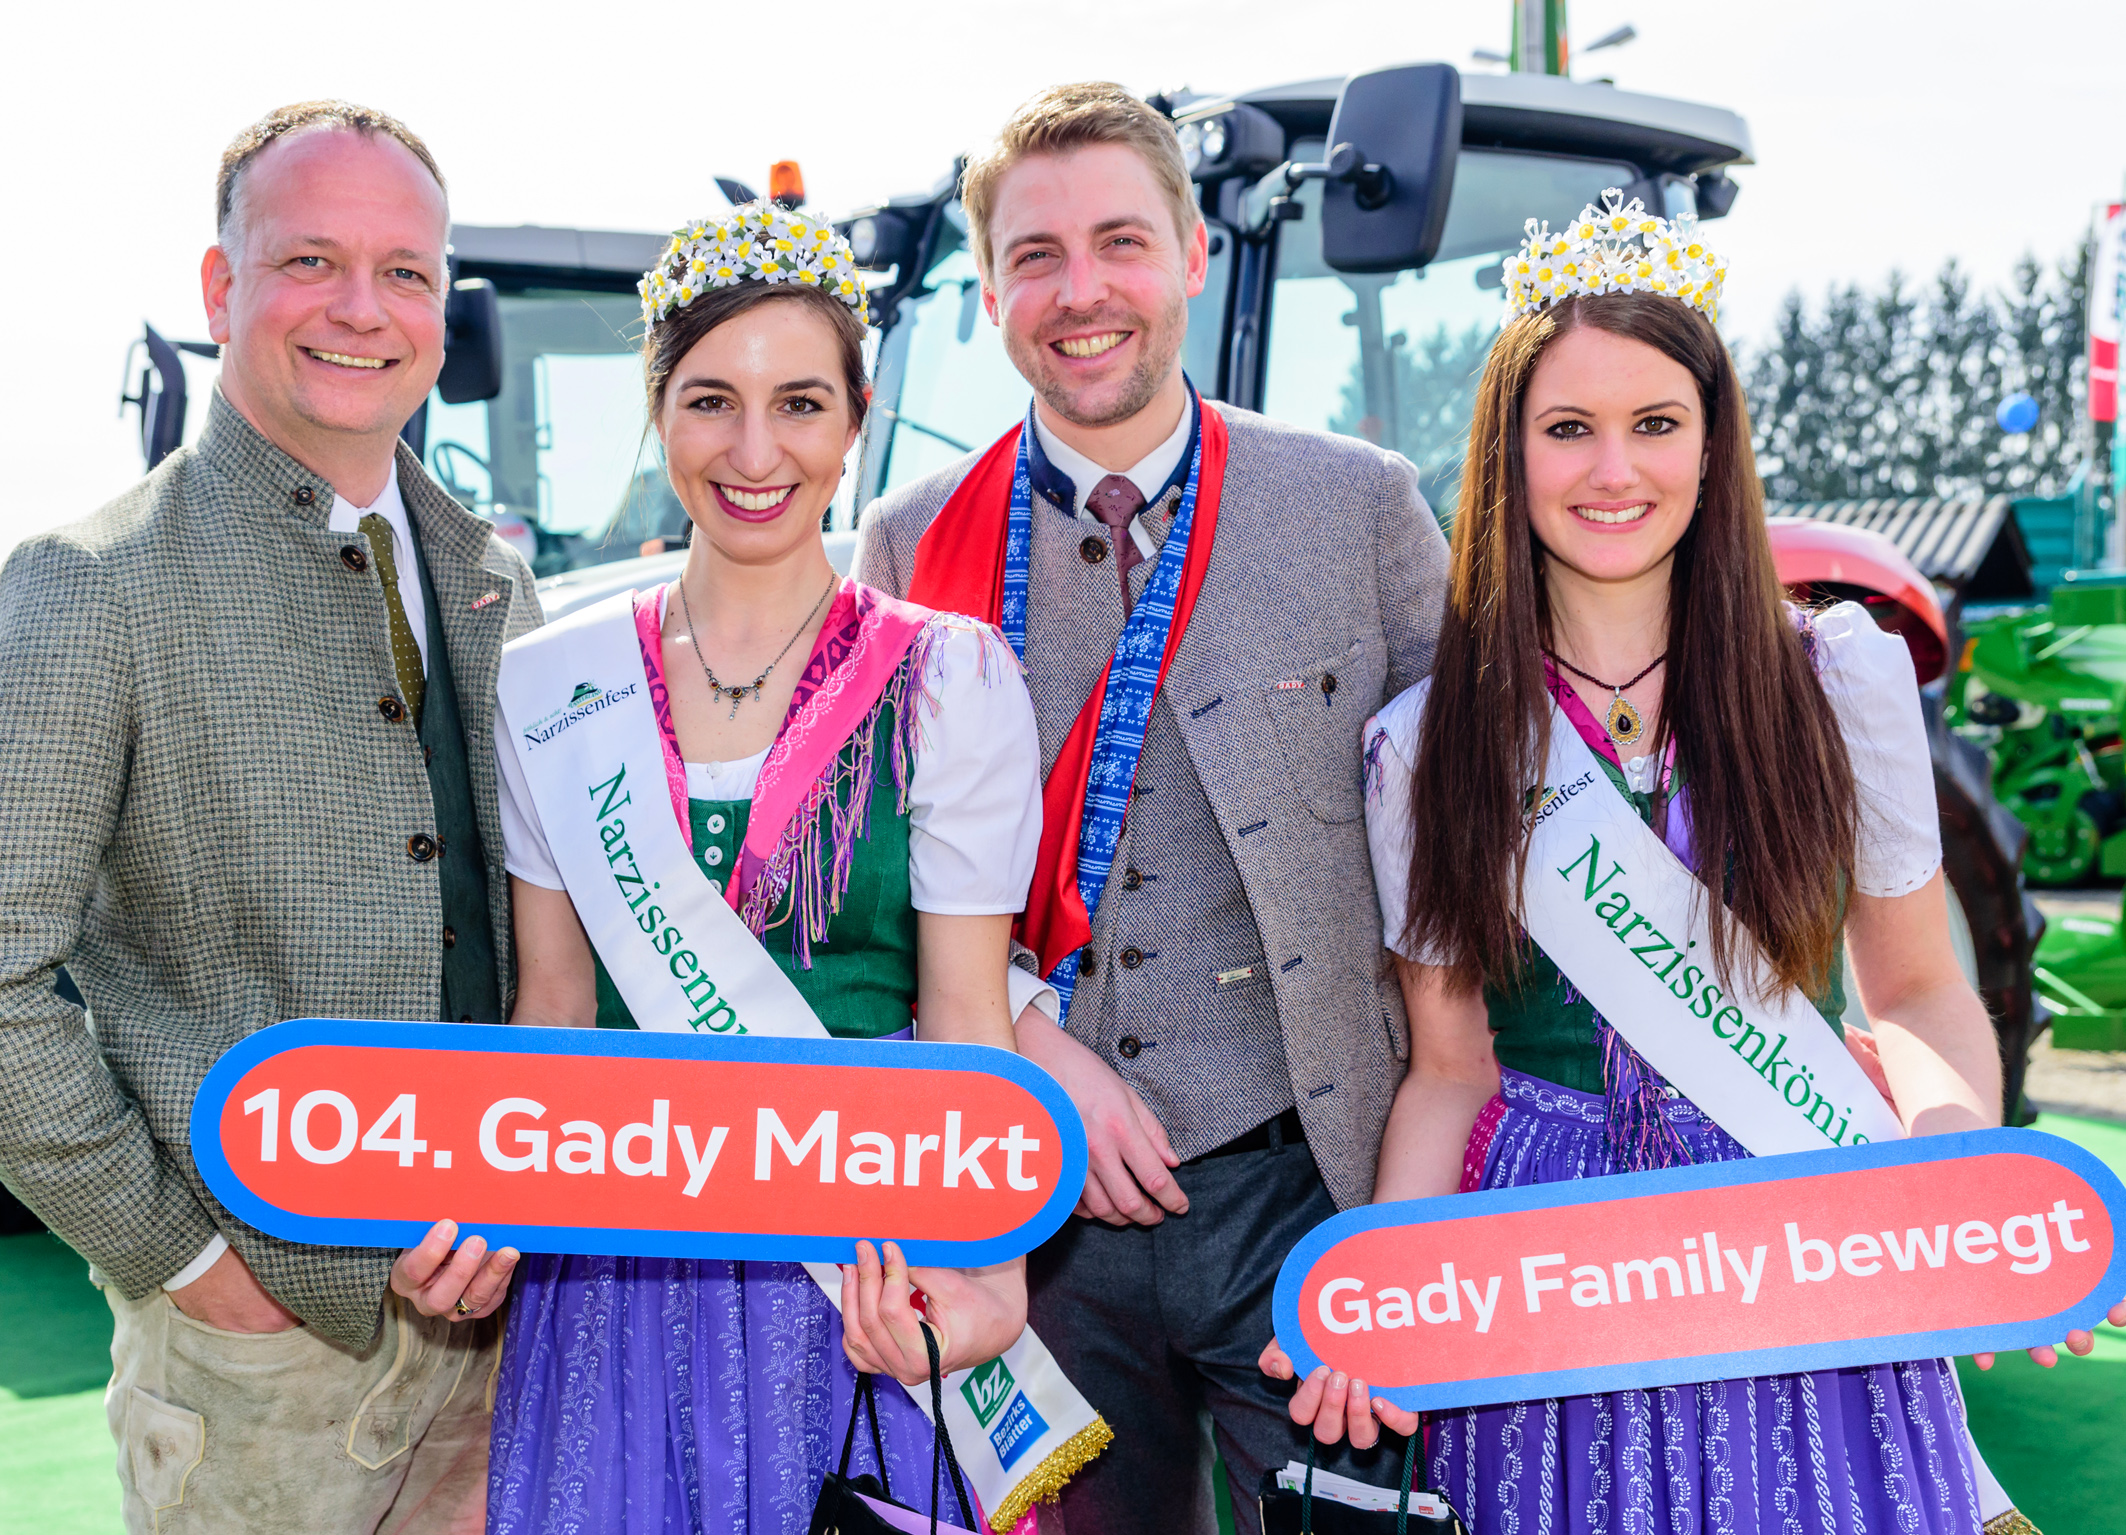 Fotos (frei): Gady Family